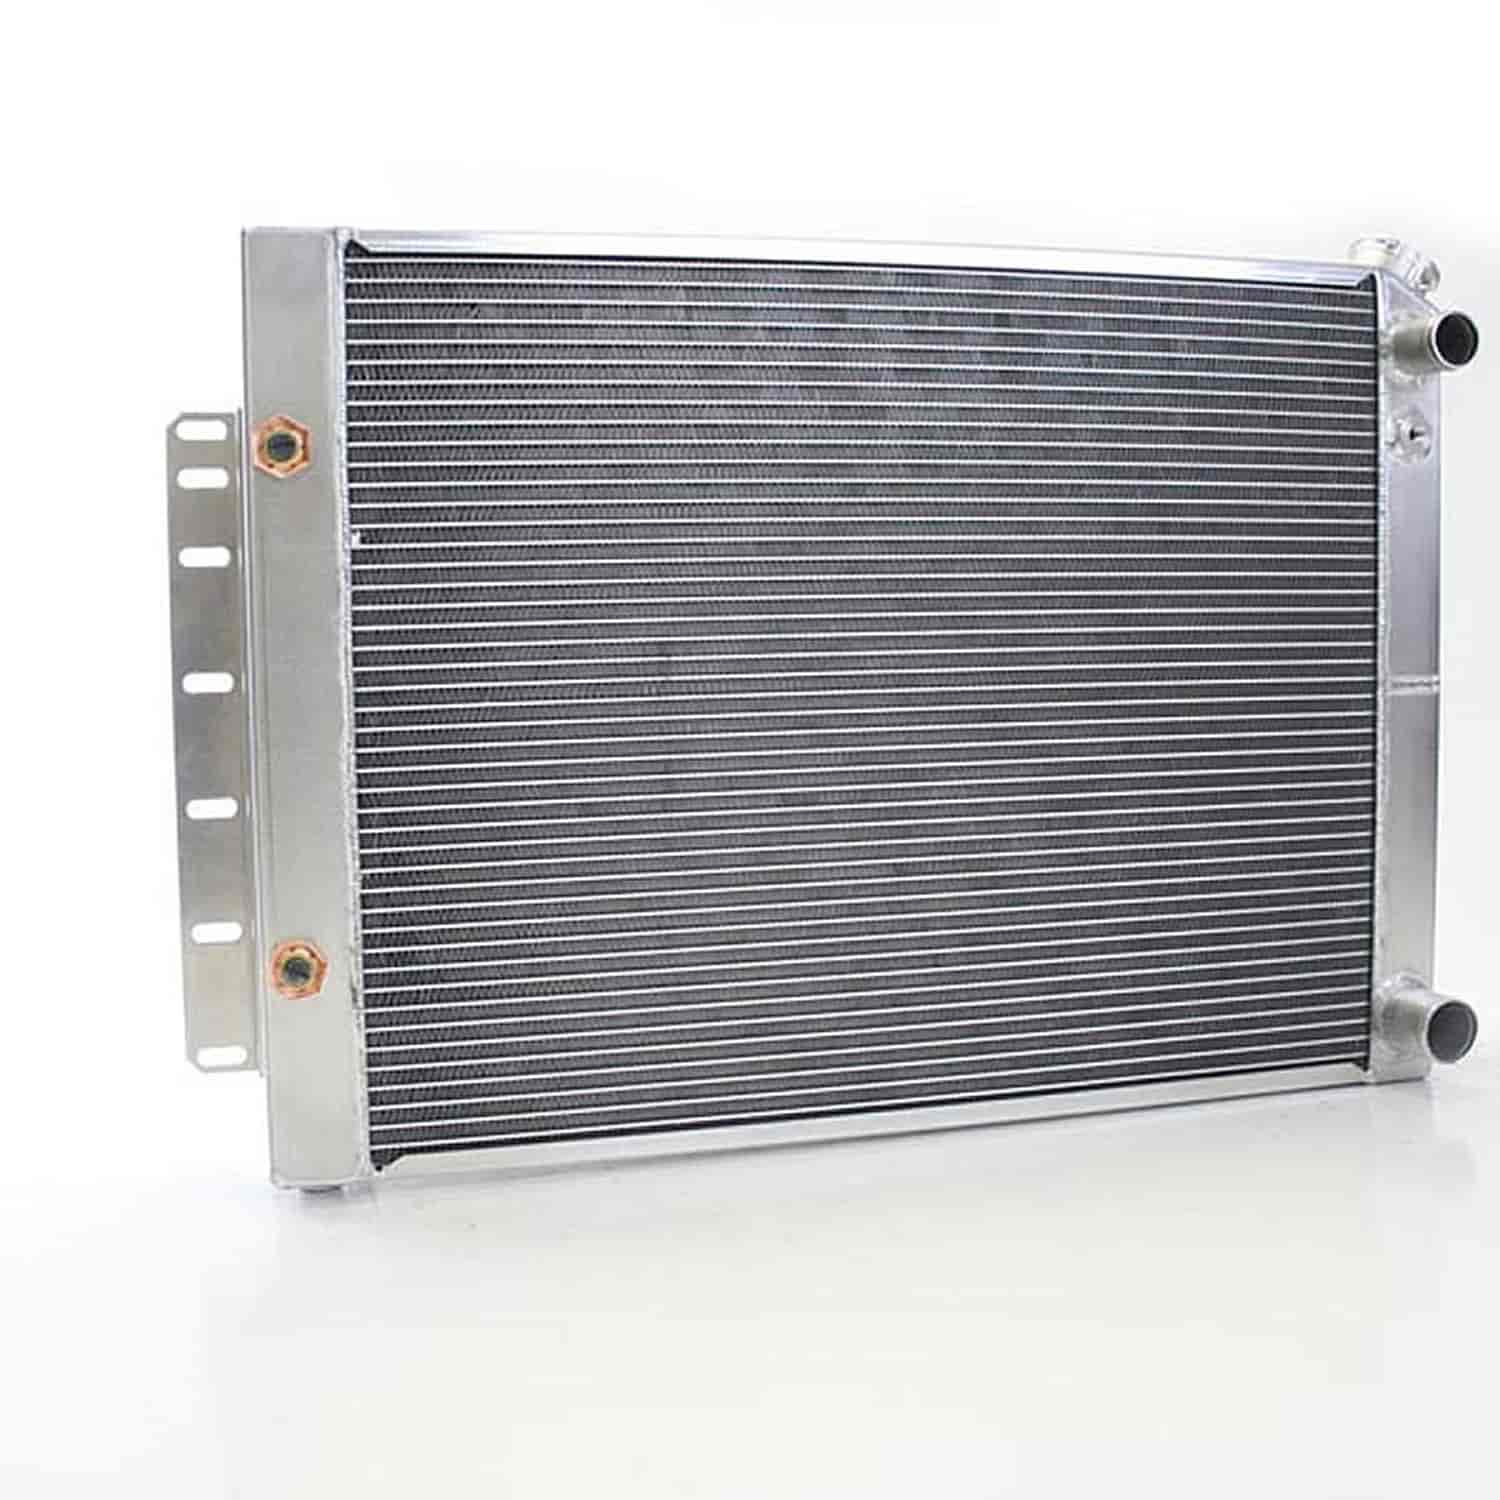 Griffin Radiators 8-70016-LS